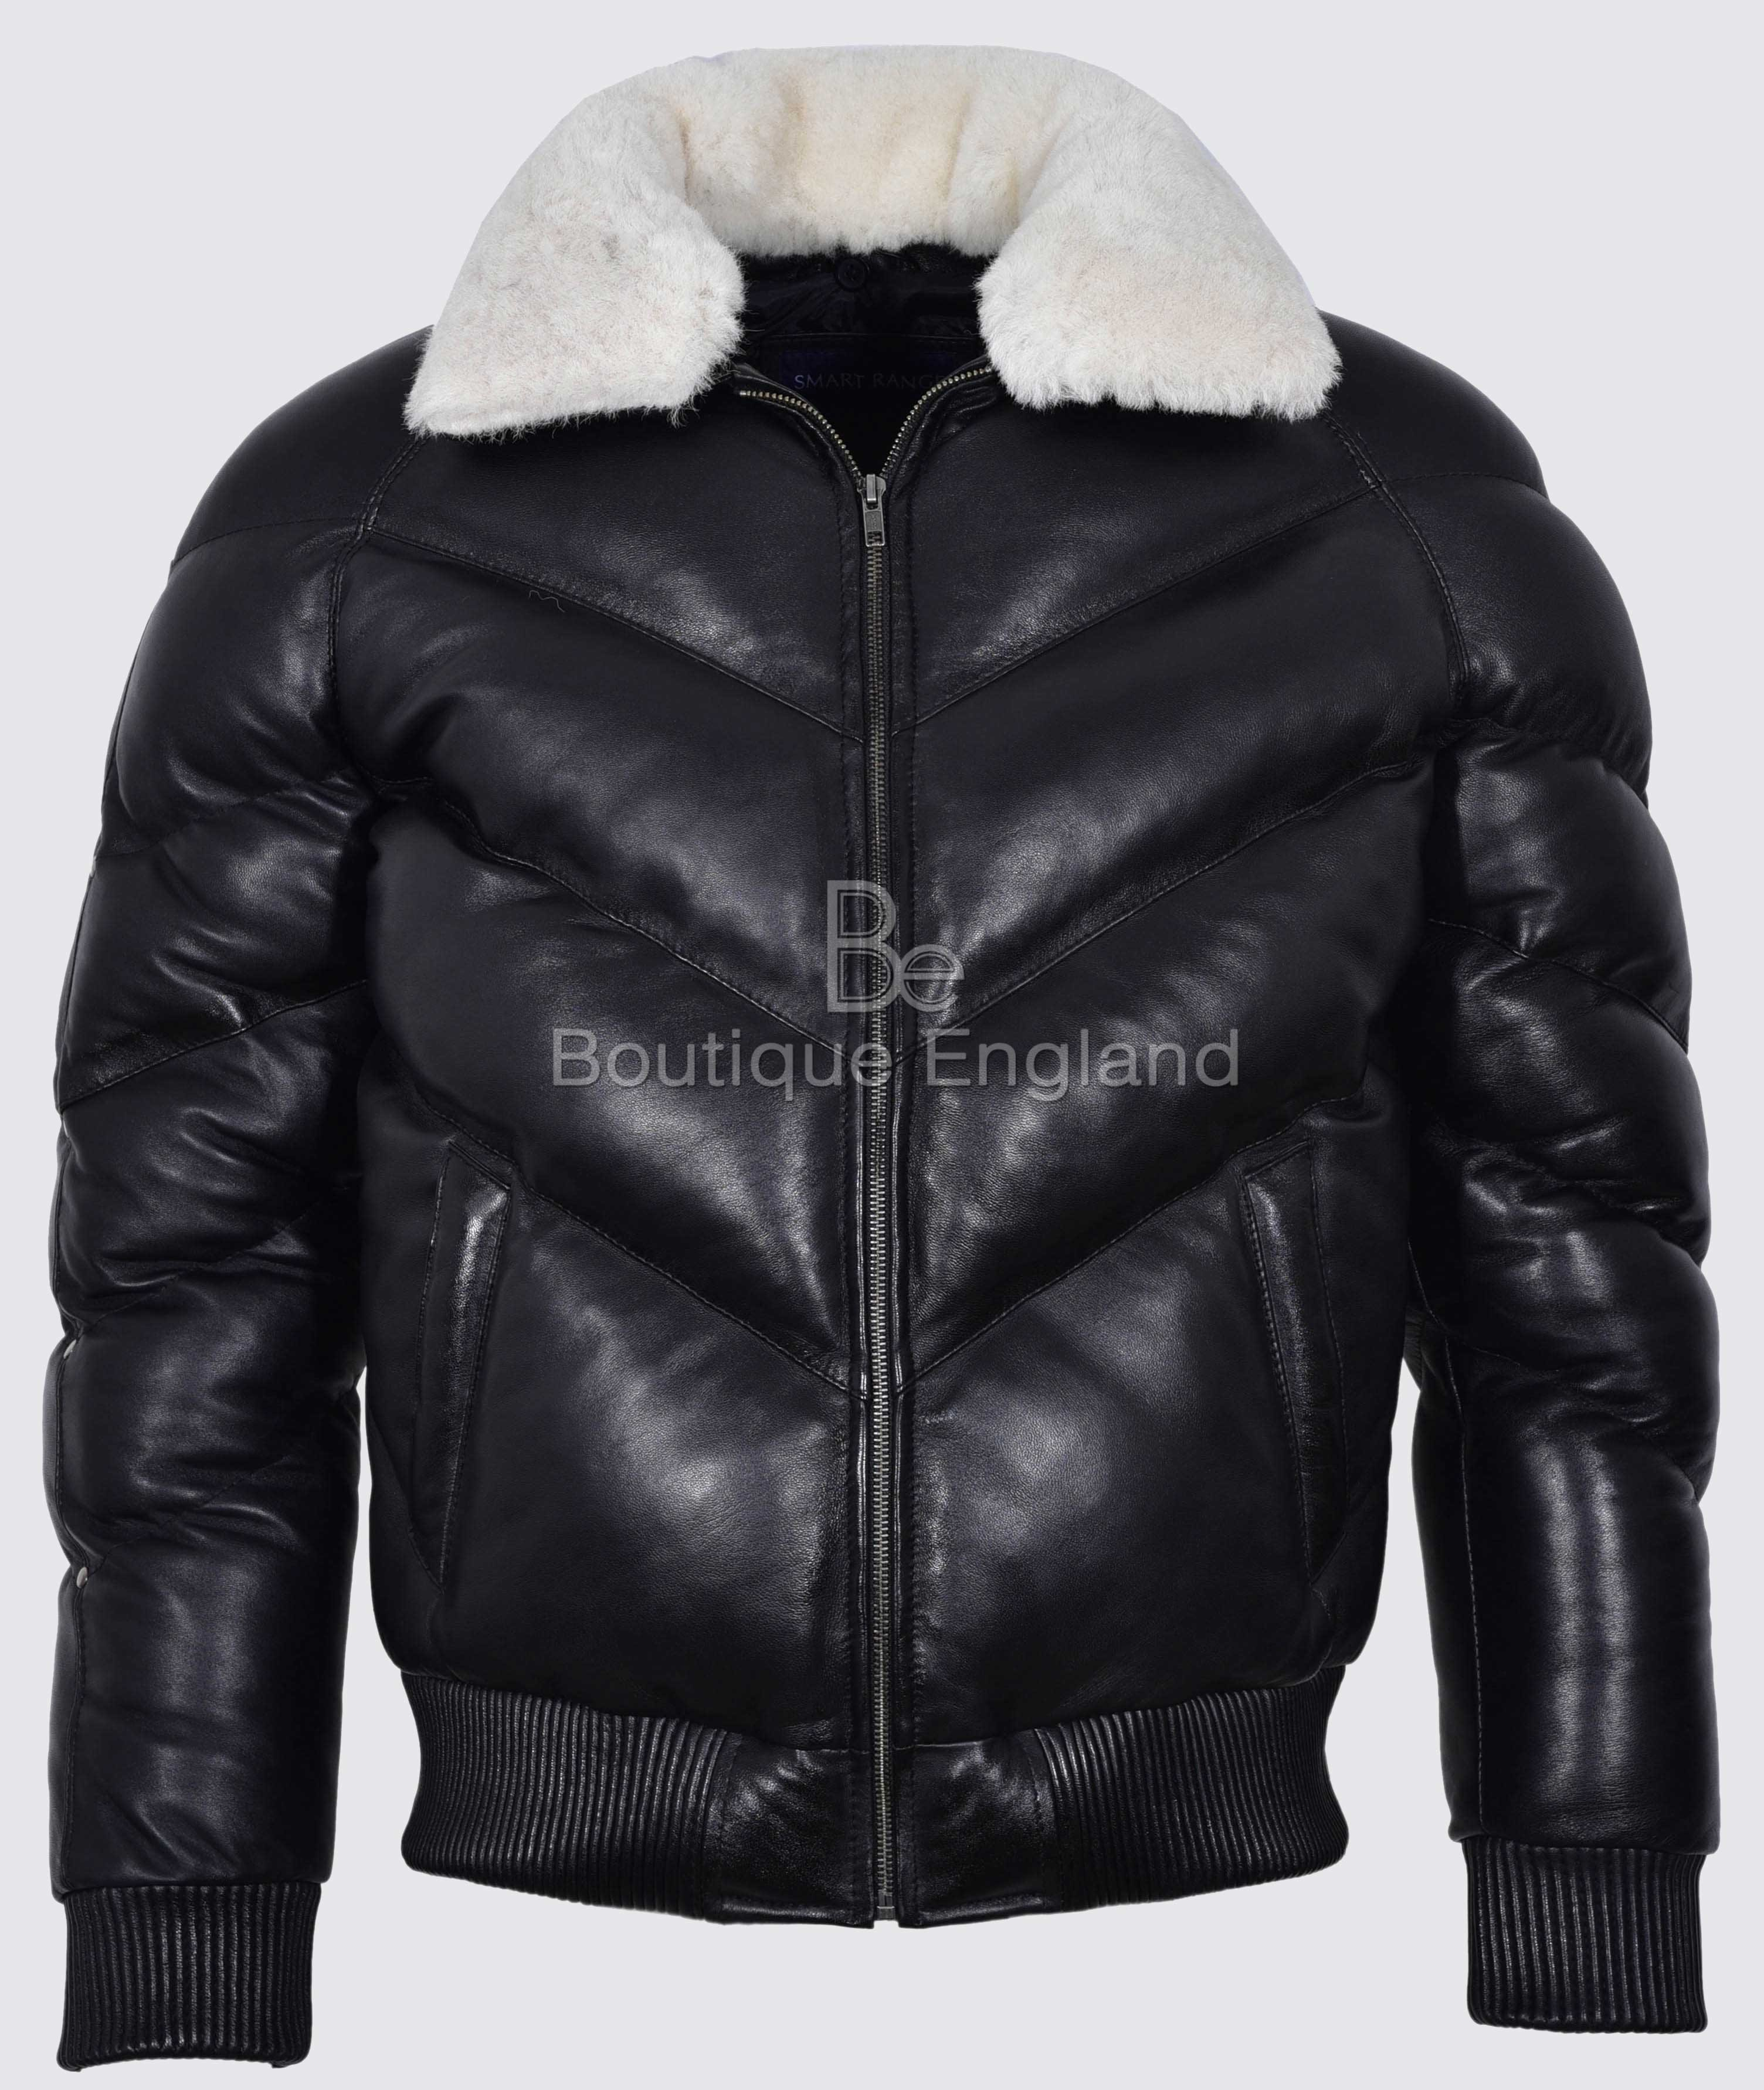 4944af3772 ACE Men's Puffer Black Real Leather Jacket White Shearling Collar Winter  Warm